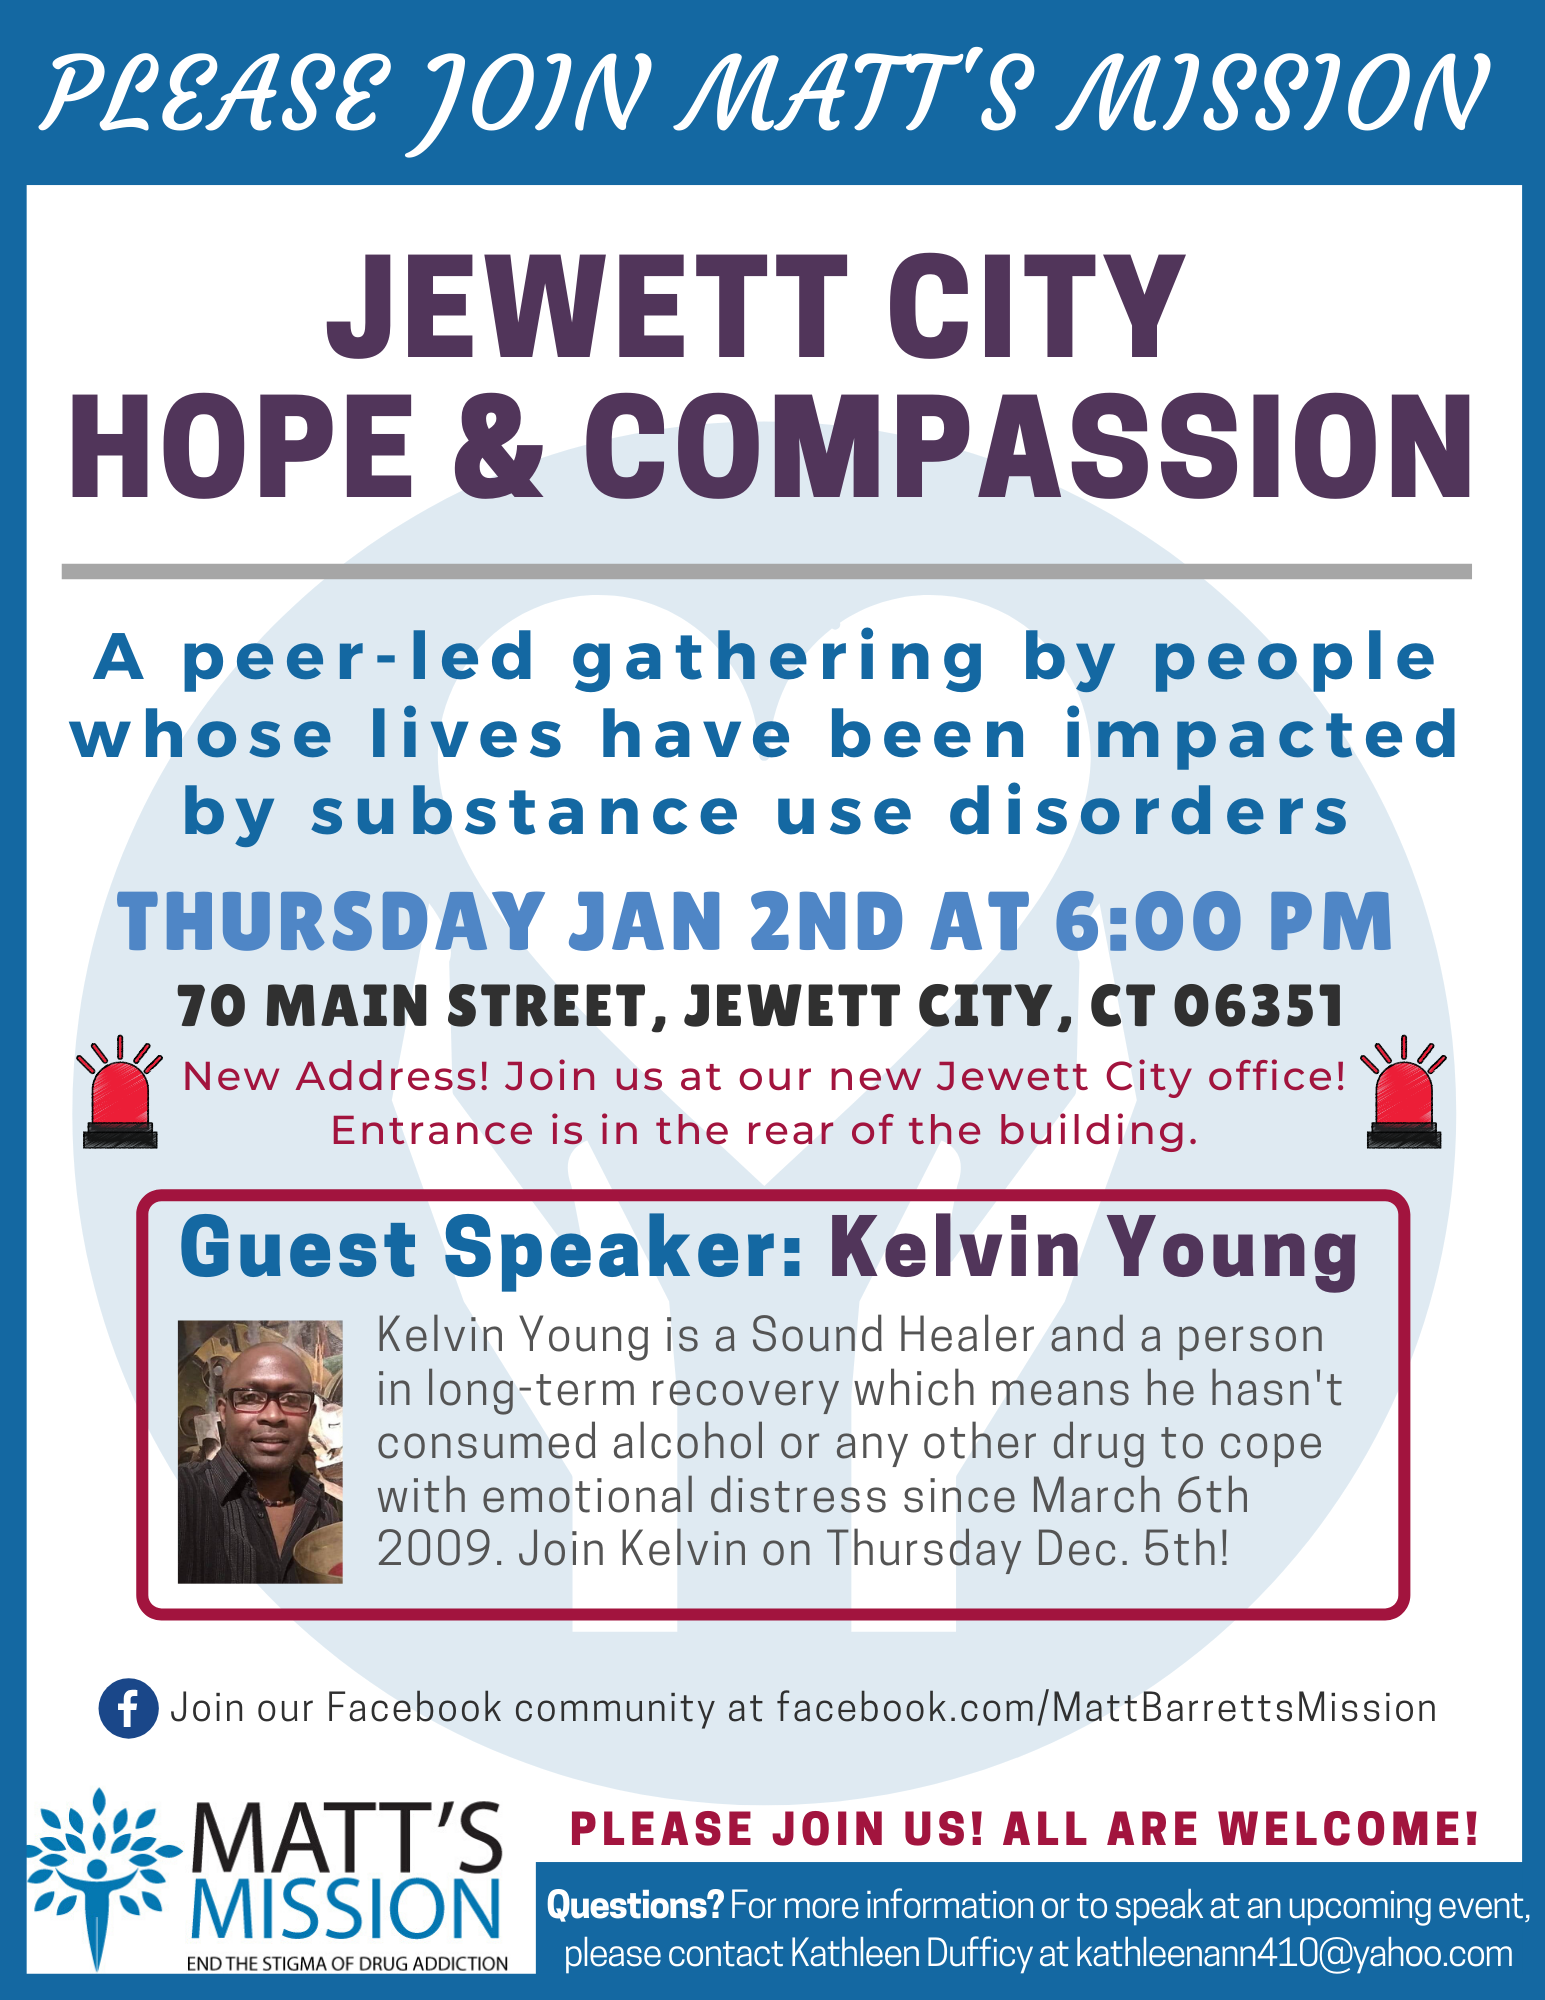 Join us for Jewett City Hope and Compassion on January 2nd, 2019.